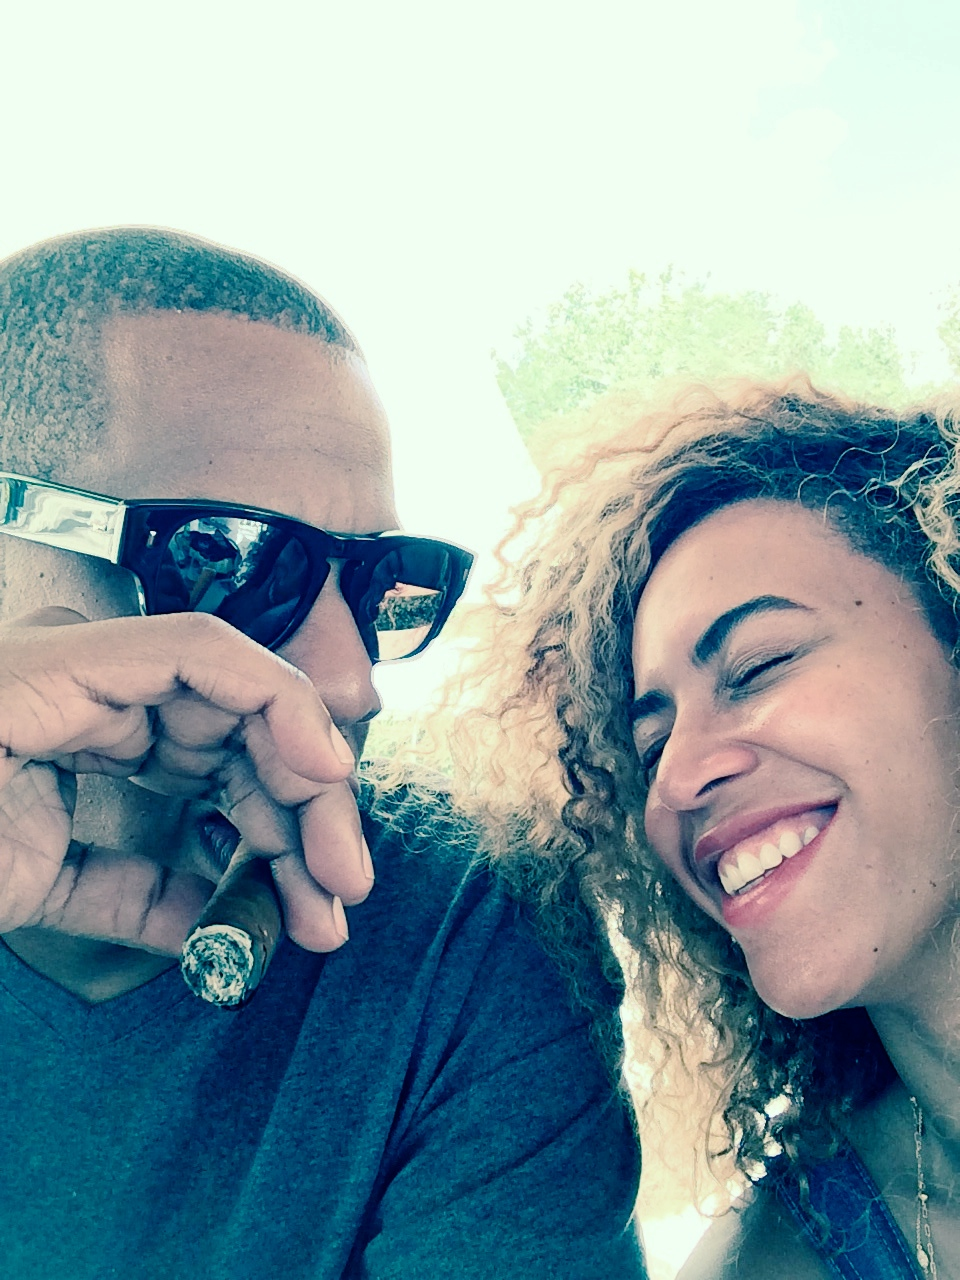 cigars and laughter-beyonce-jay z-6th anniversary vacation-dominican republic-the jasmine brand